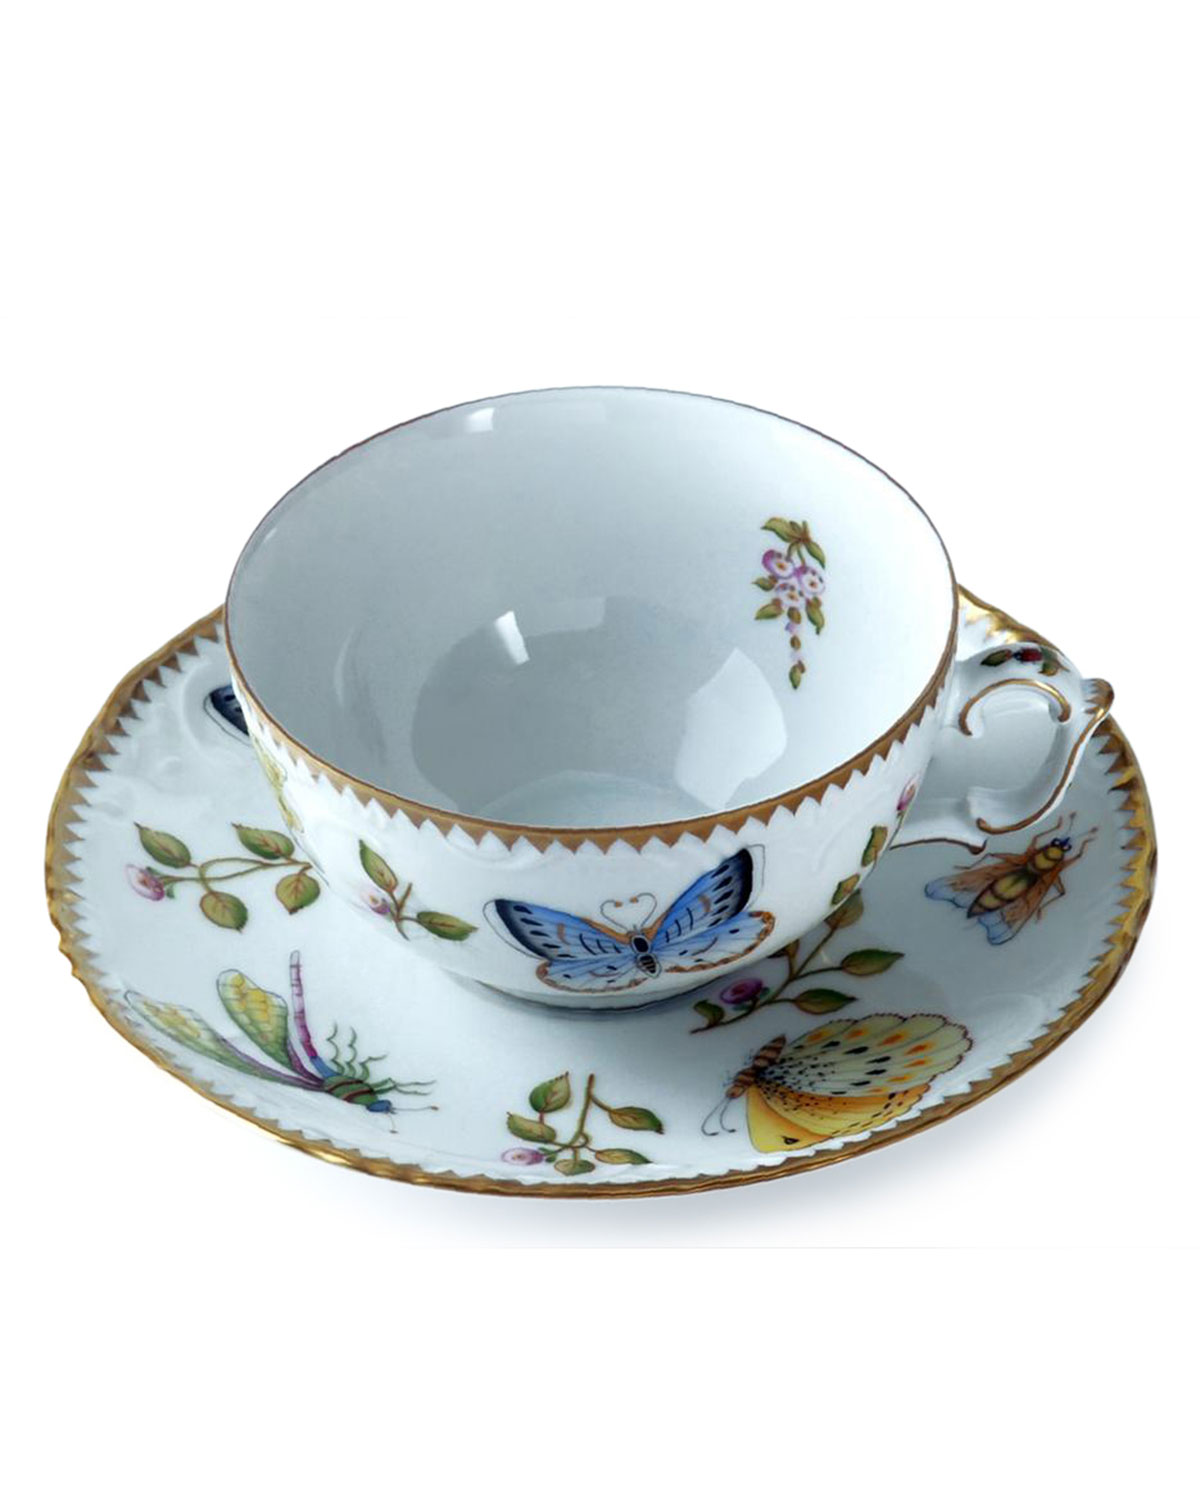 Anna Weatherley Drinkwares SPRING IN BUDAPEST TEACUP AND SAUCER